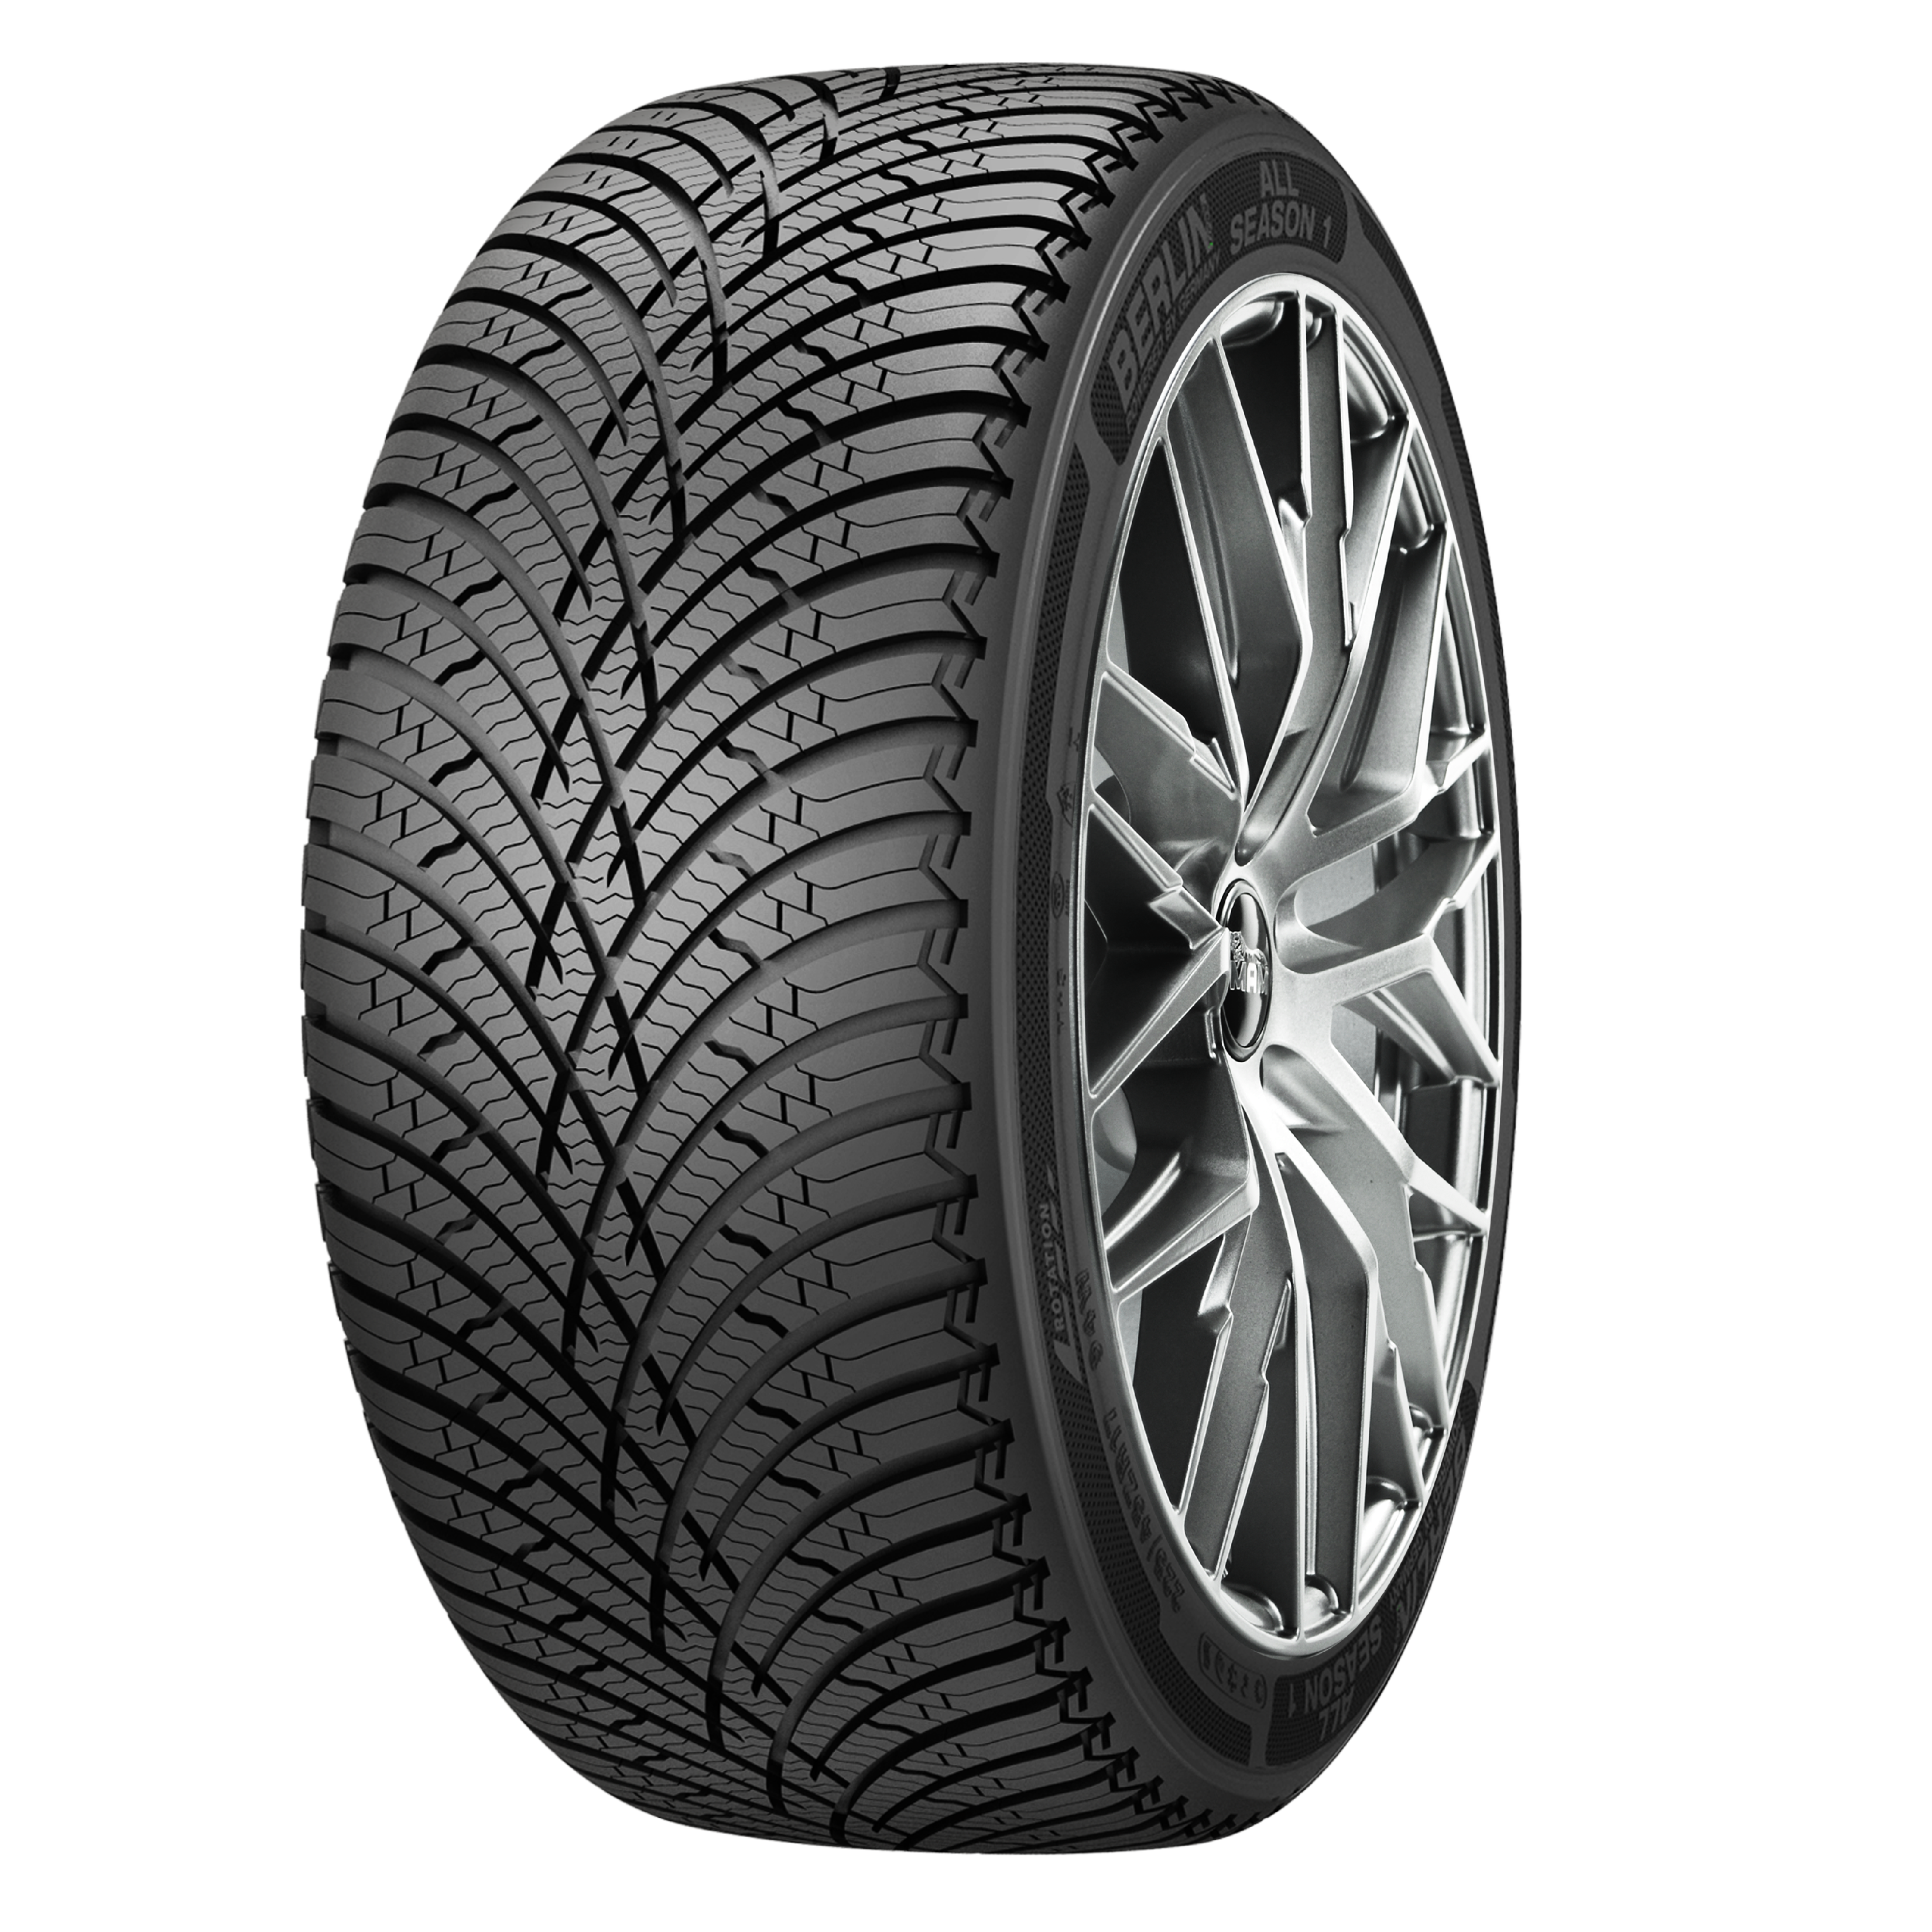 Gomme Nuove Berlin 225/55 R16 95H ALL SEASON 1 M+S pneumatici nuovi All Season